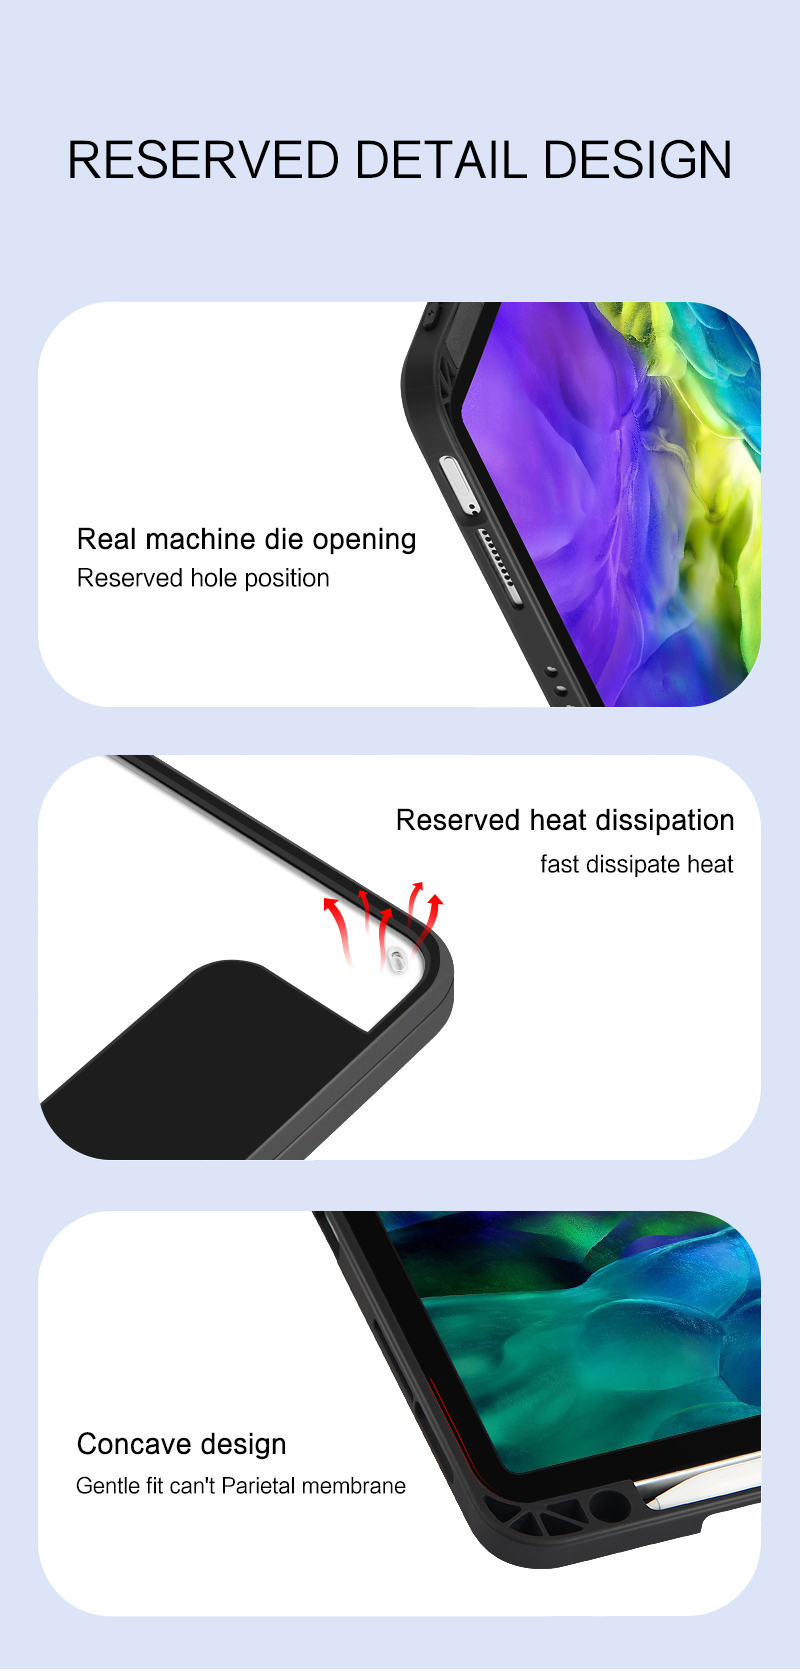 2018 Wake Smart IPad 2020 12.9 for Sleep Pen Pro Auto A2379 Magnetic Cover Slot A2460 A2461 Case A2301 Up Function 2021 Funda 11